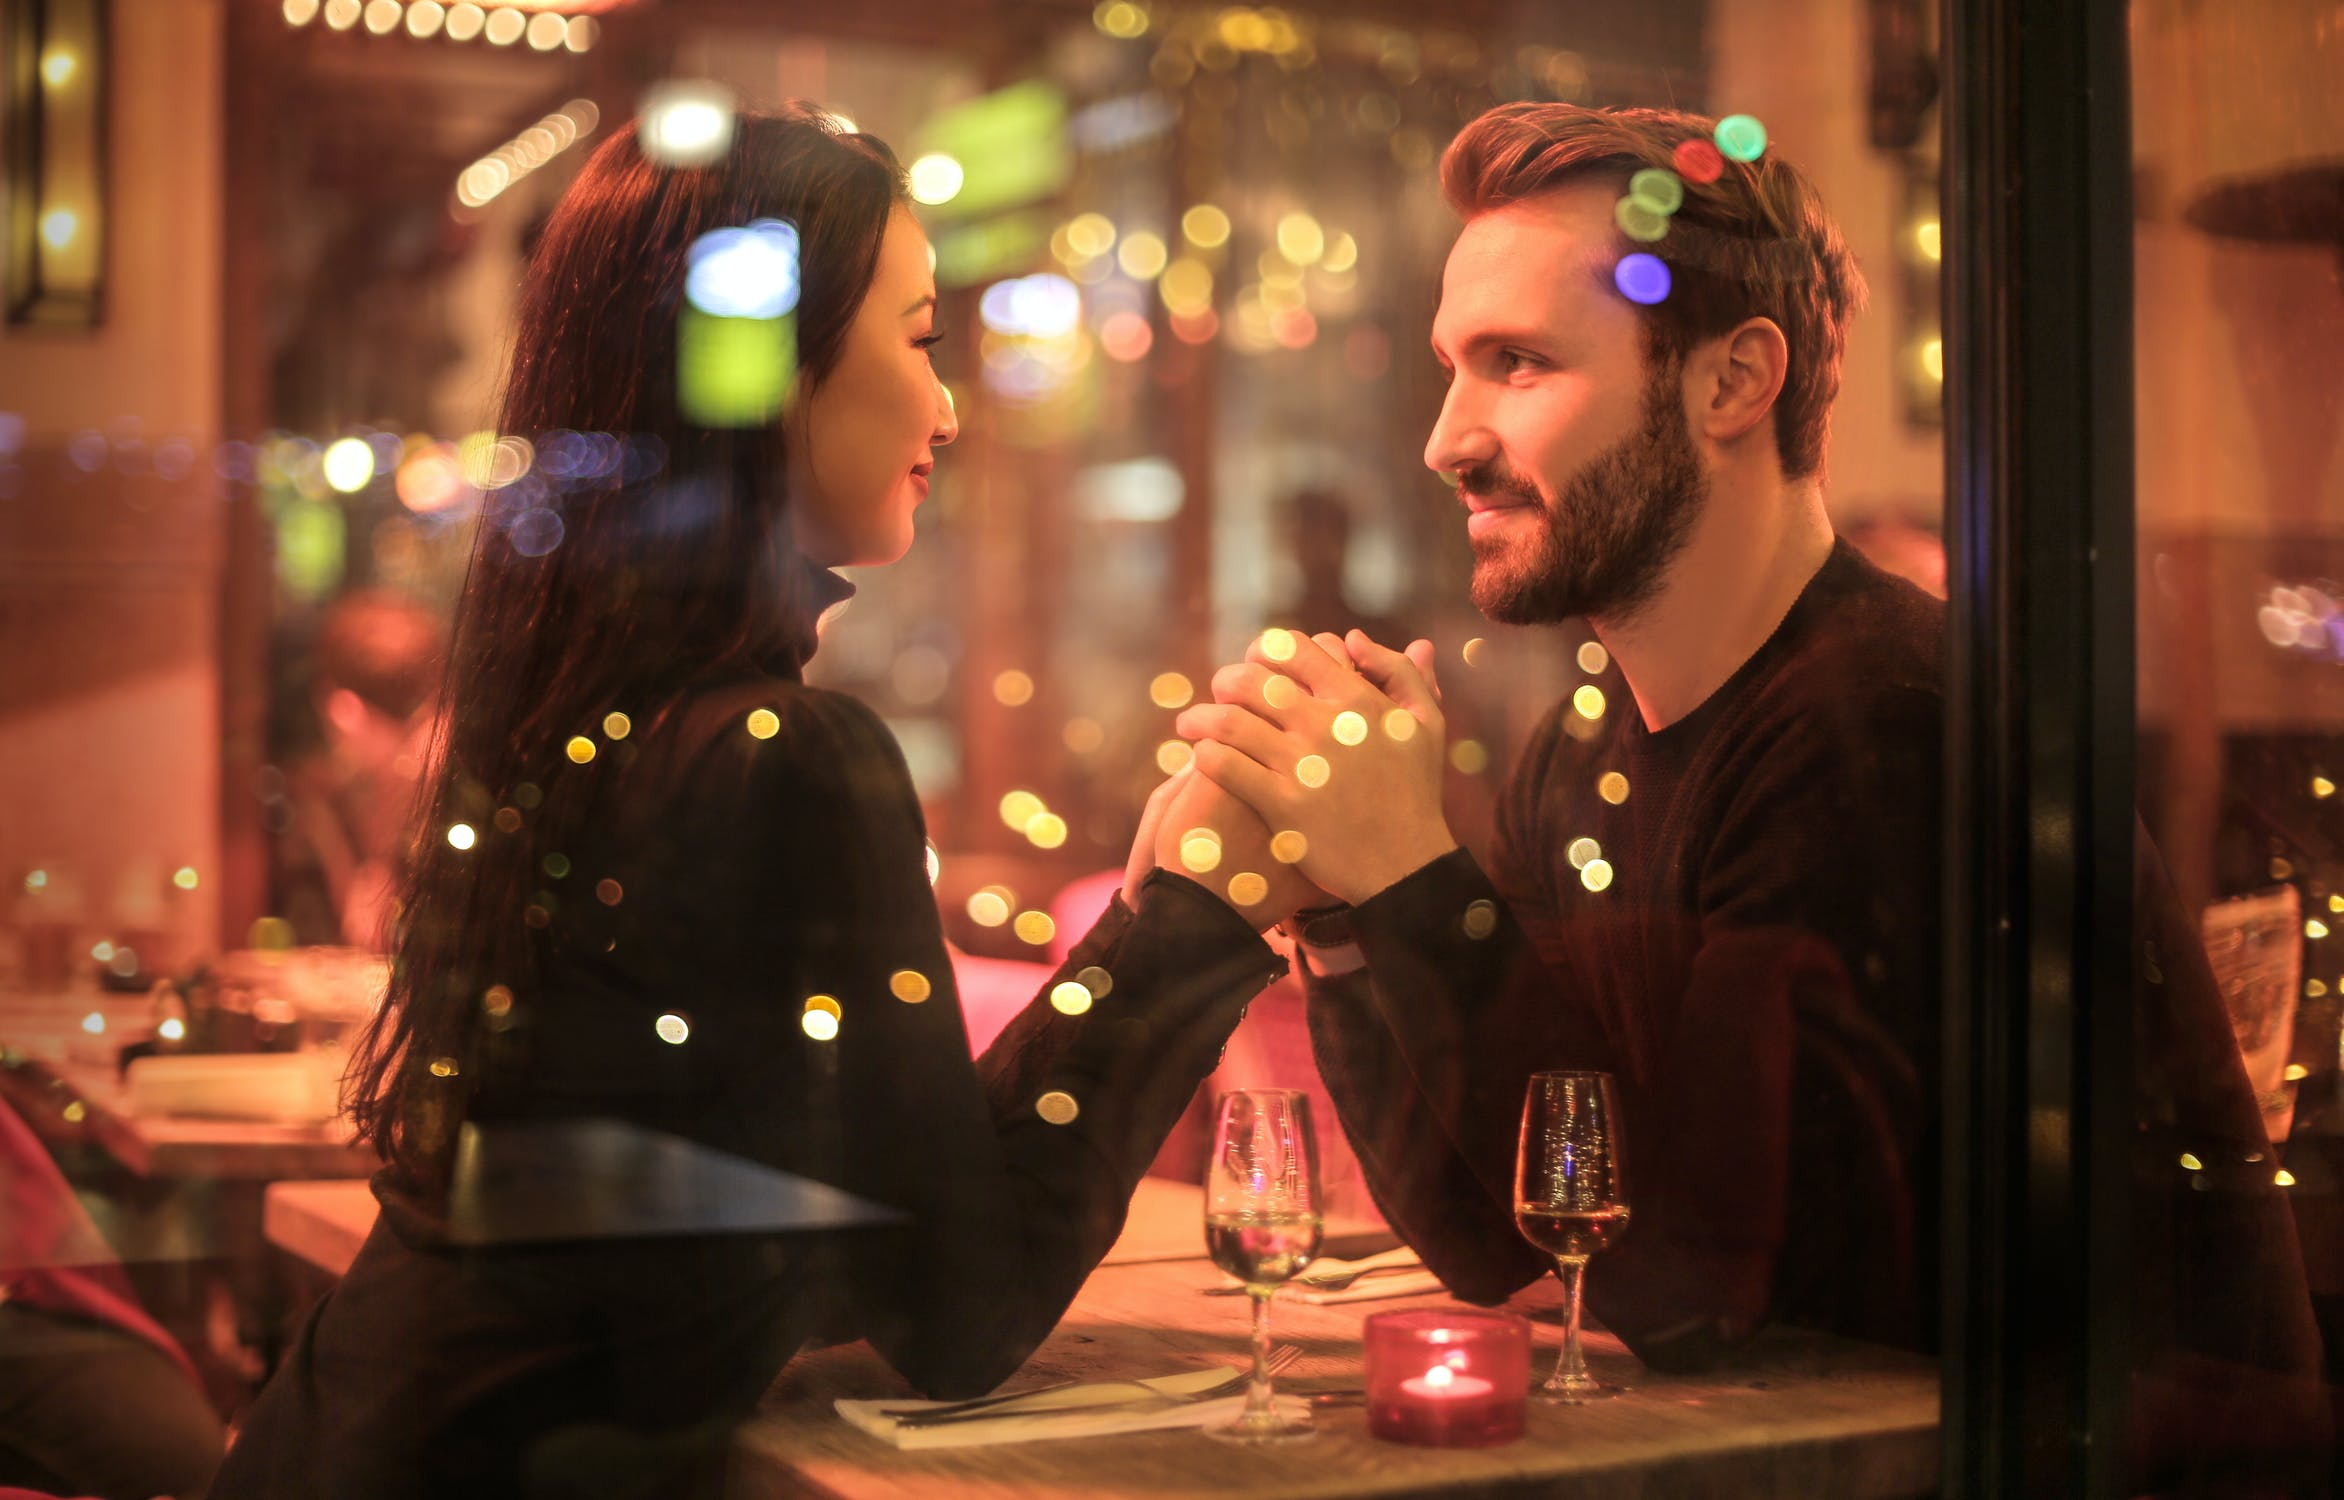 How to date while observing Social distancing